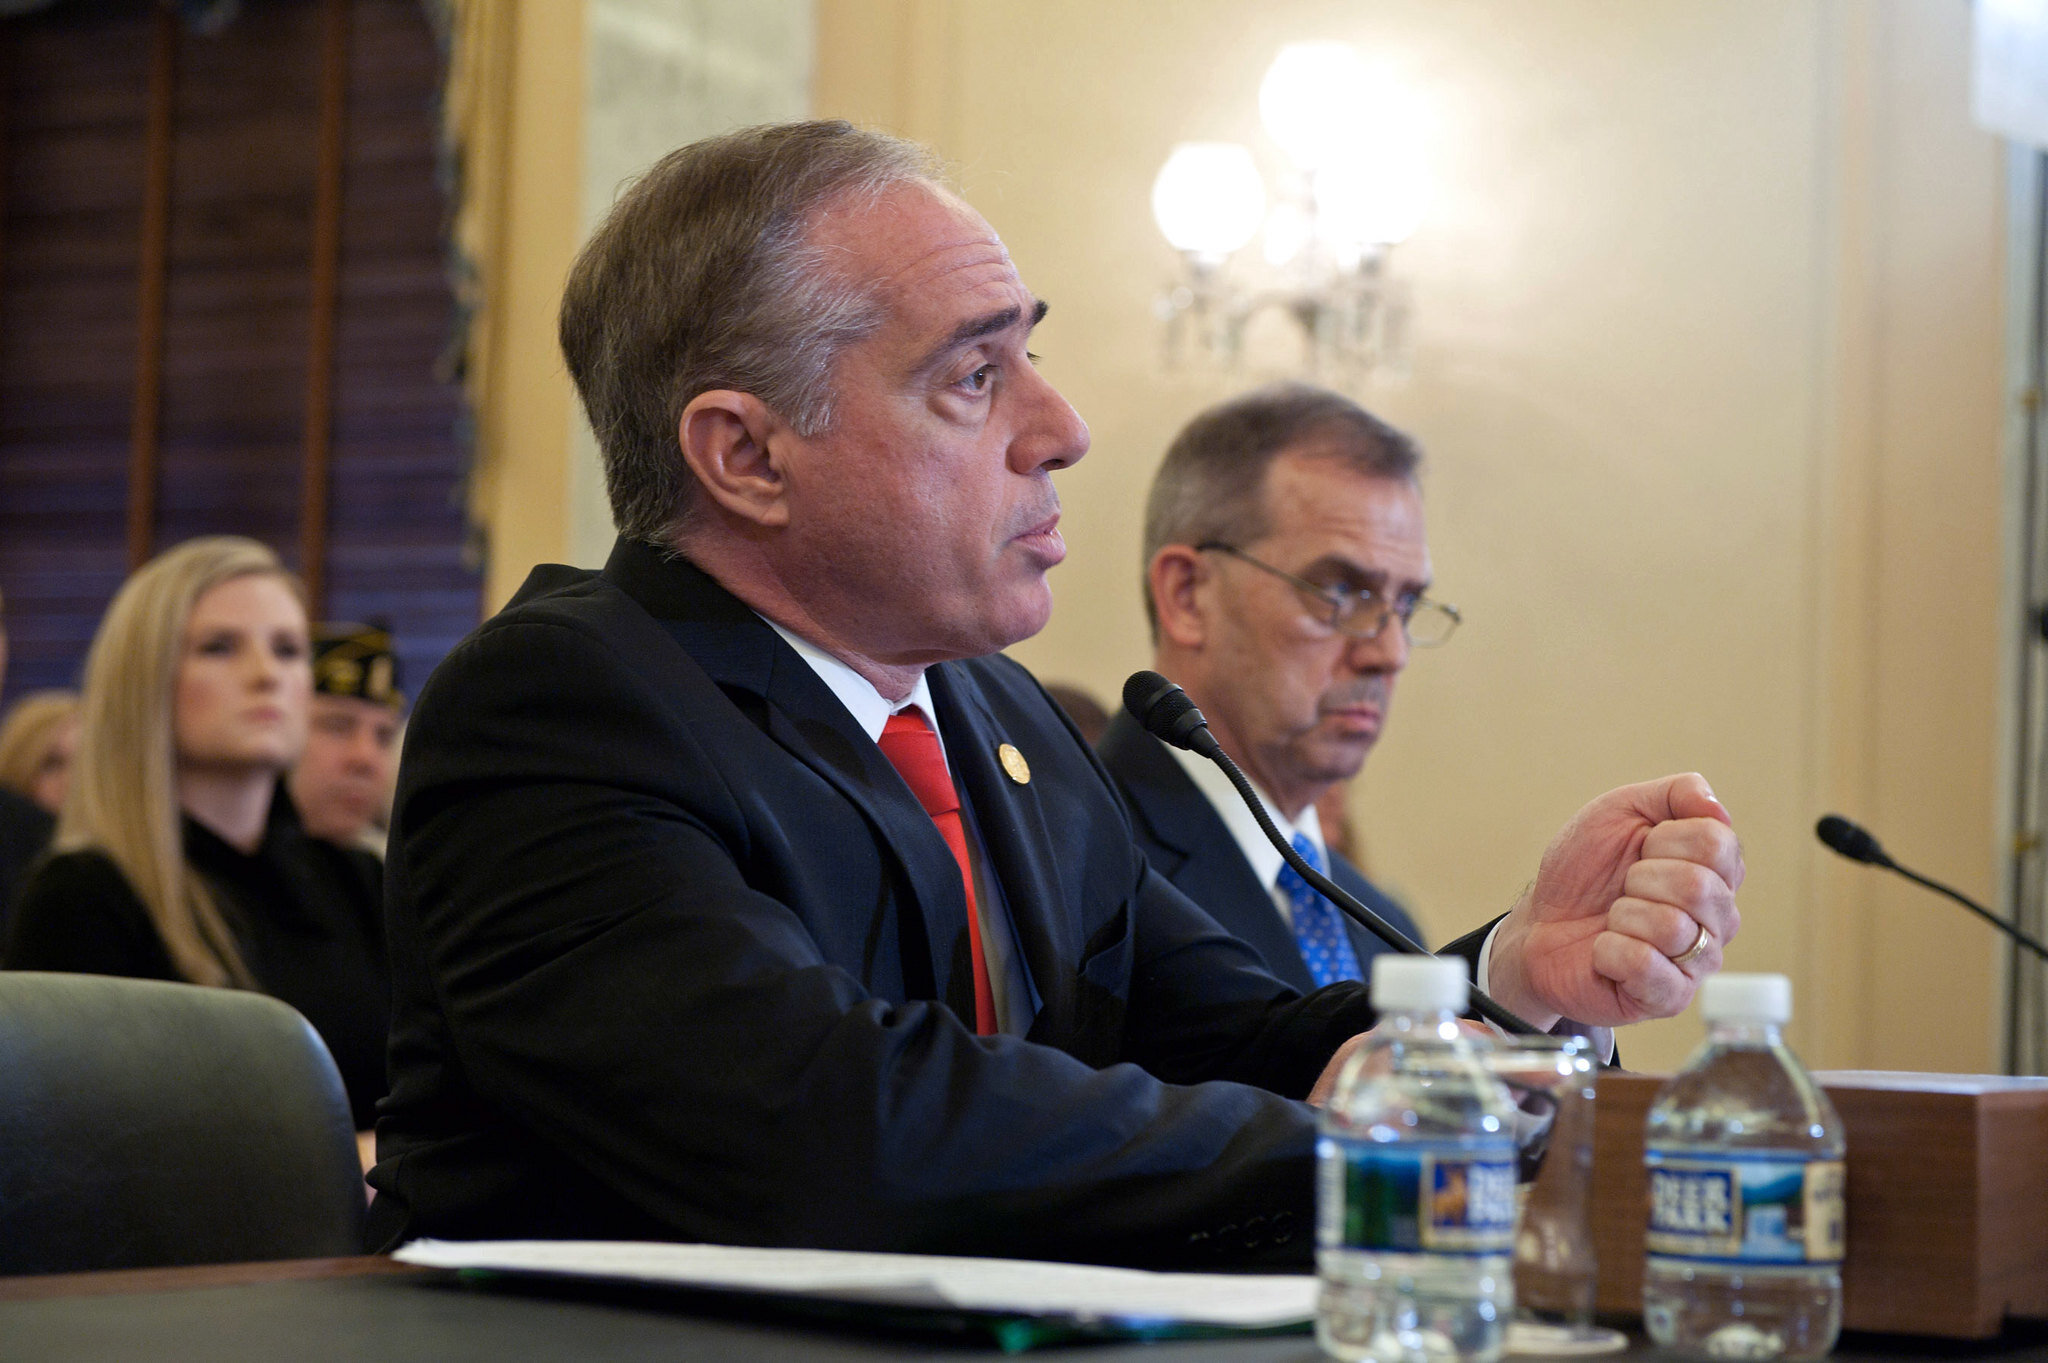 On Wednesday, September 27, 2017, VA Secretary David Shulkin, MD., and Dr. David Carroll, Executive Director, VA's Office of Mental Health and Suicide Prevention testified before the Senate Committee on Veterans' Affairs on the department's suicide prevention programs. Testimony followed the signing of a Suicide Prevention Declaration by Secretary Shulkin and leading members of the Senate Committee on Veterans' Affairs.  [VA photo by Robert Turtil]